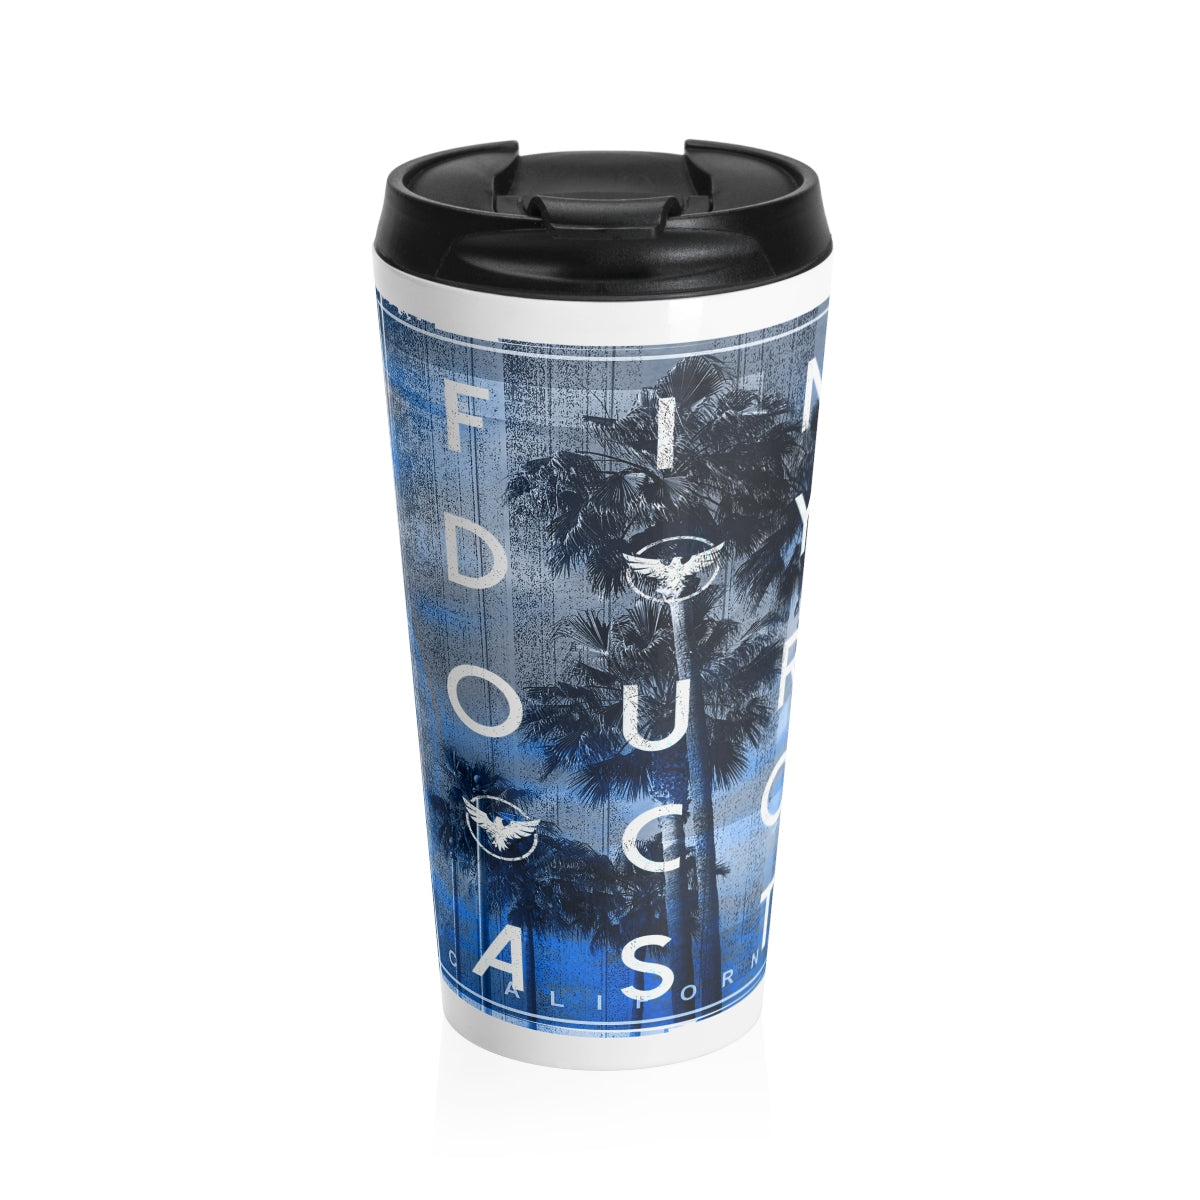 Explorer DNA Stainless Steel Travel Mug - Find Your Coast Brand